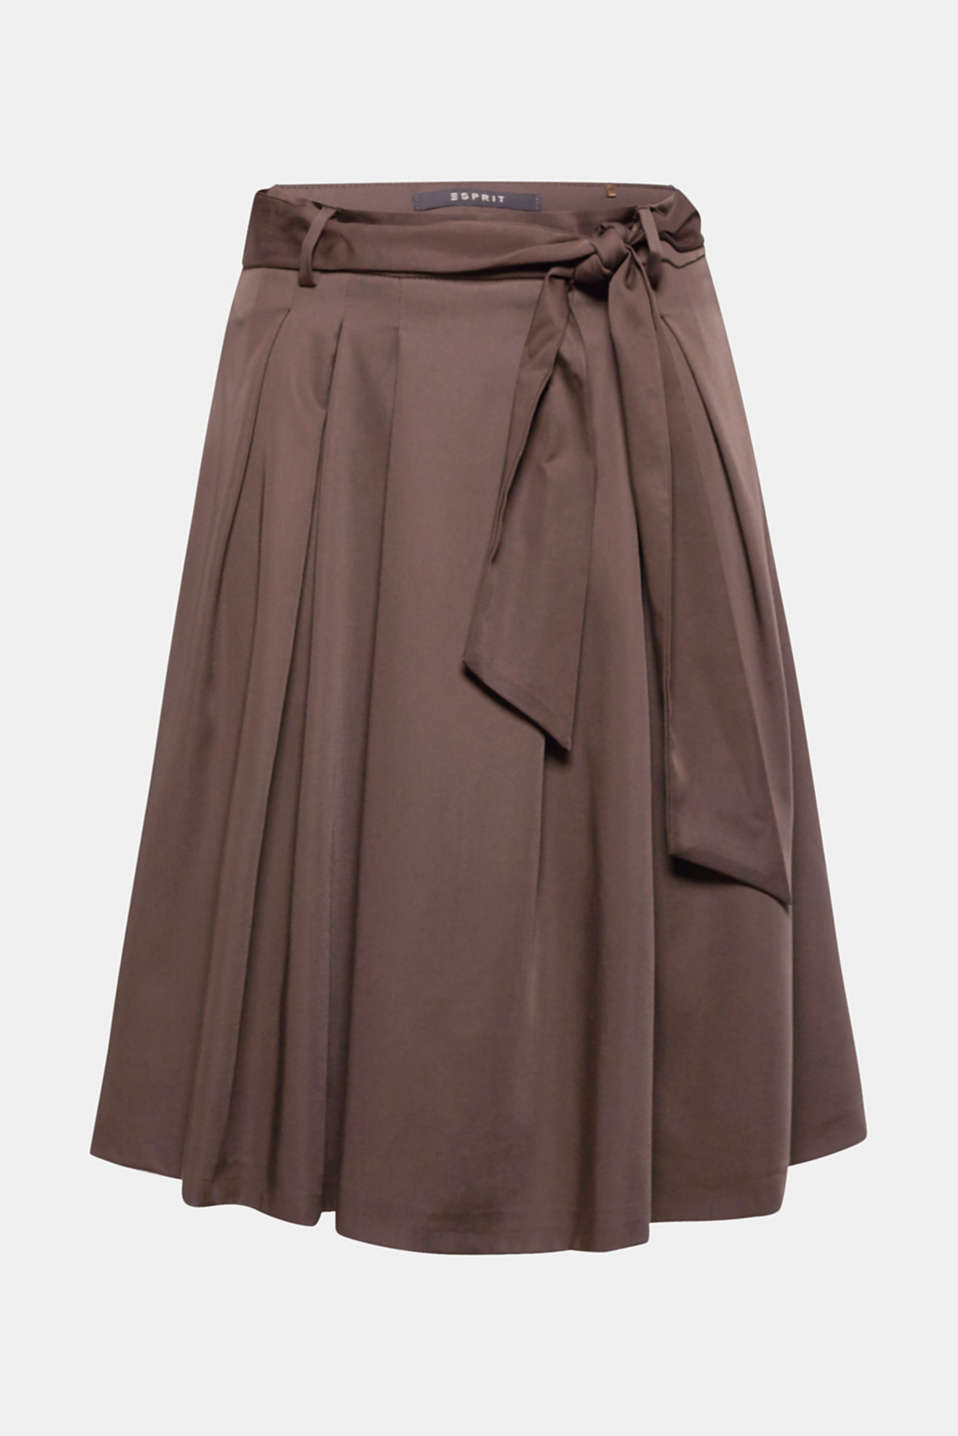 Bring some momentum into your look: wide, swirling skirt made of a flowing lyocell blend with added stretch for comfort and a wide belt.